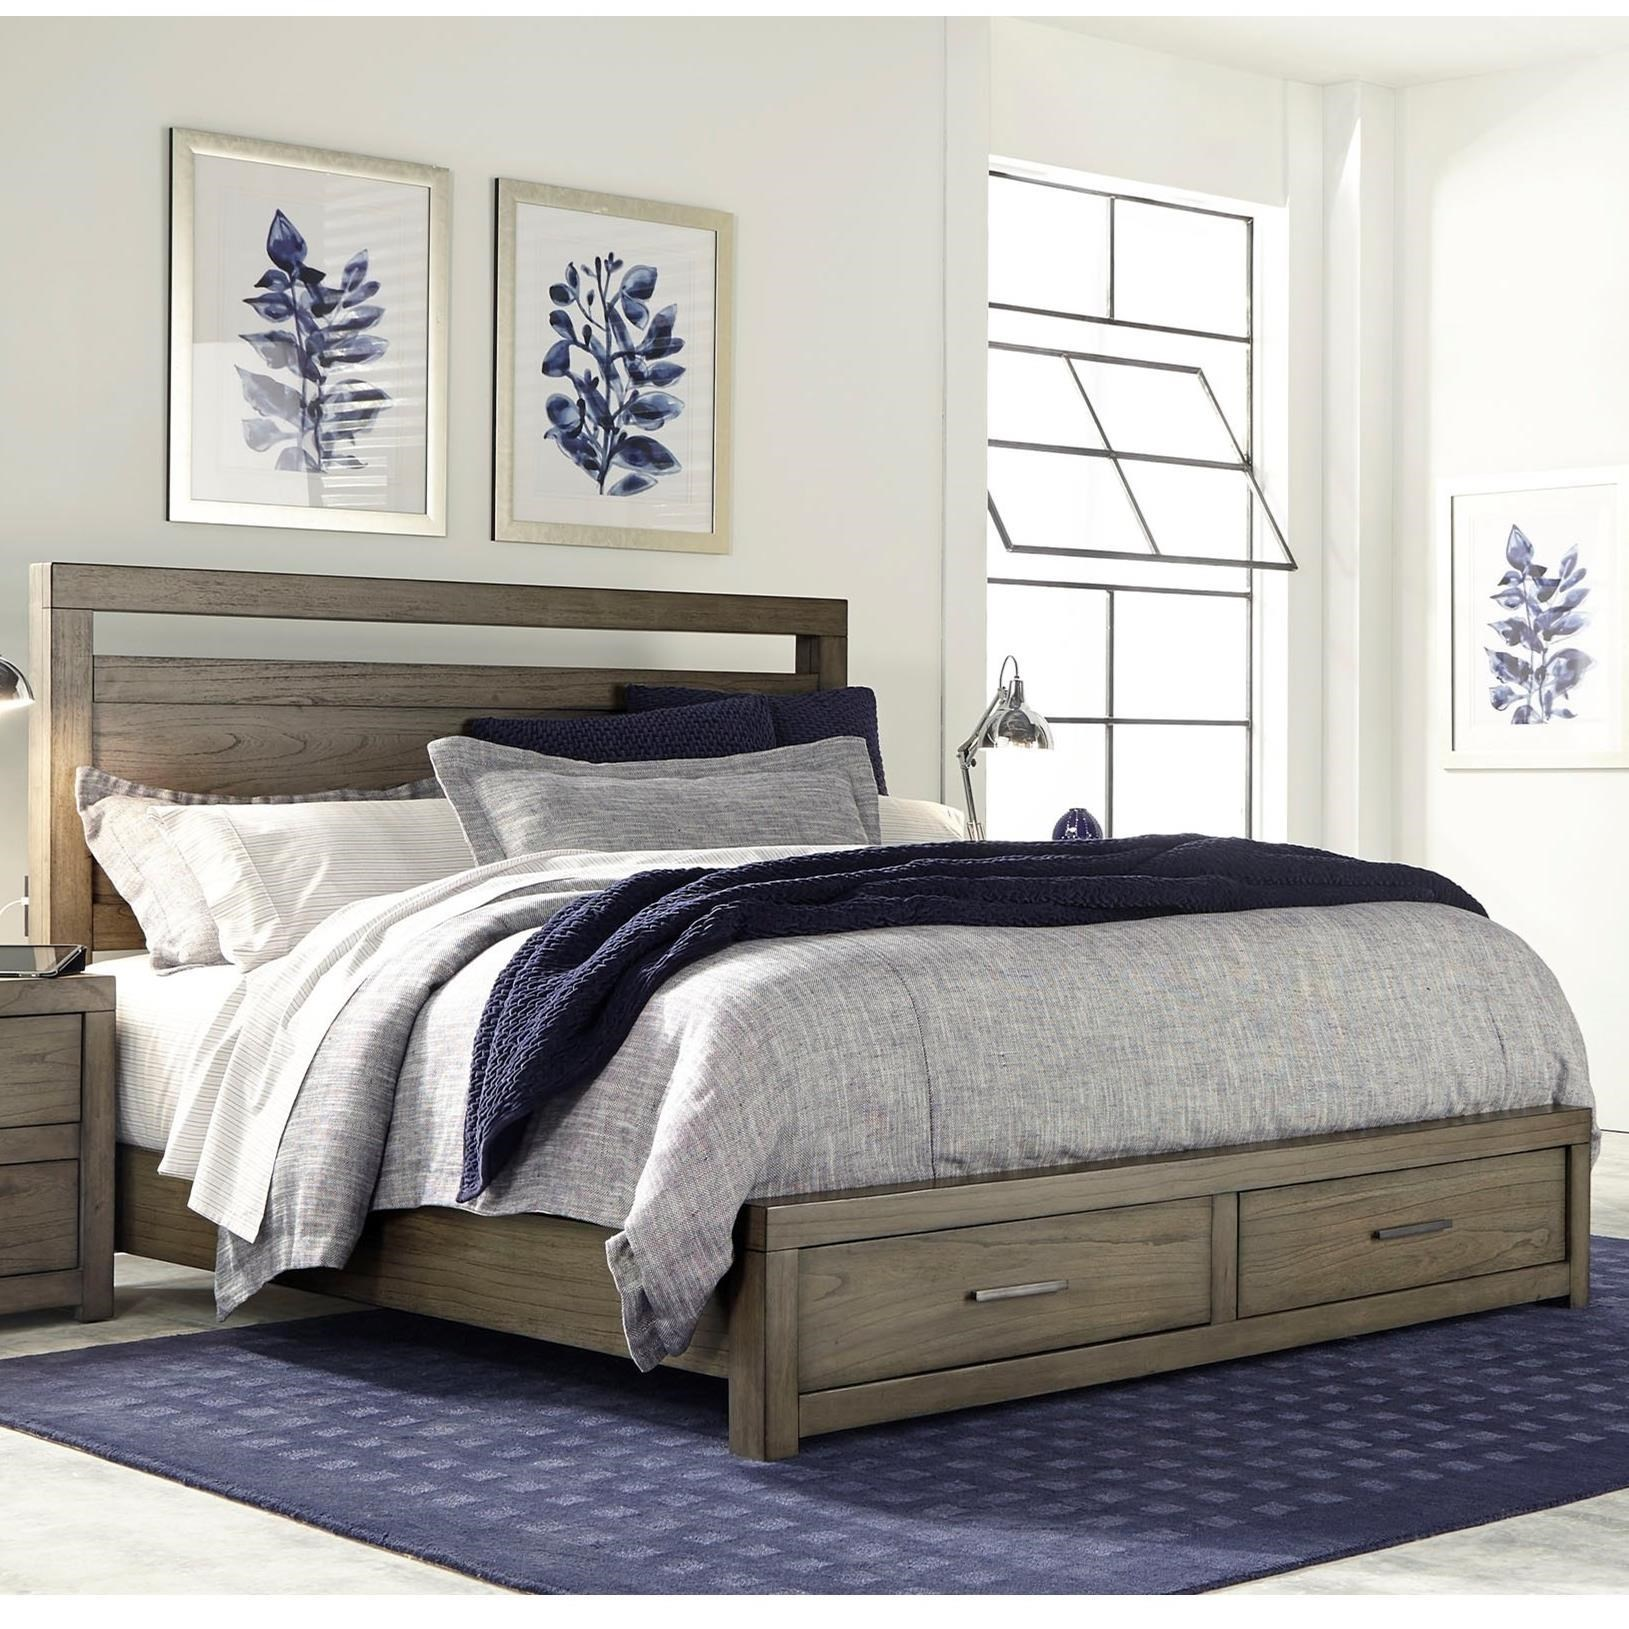 Bedding Storage Moreno Queen Panel Storage Bed With Usb Charging Outlets By Highland Court At Morris Home